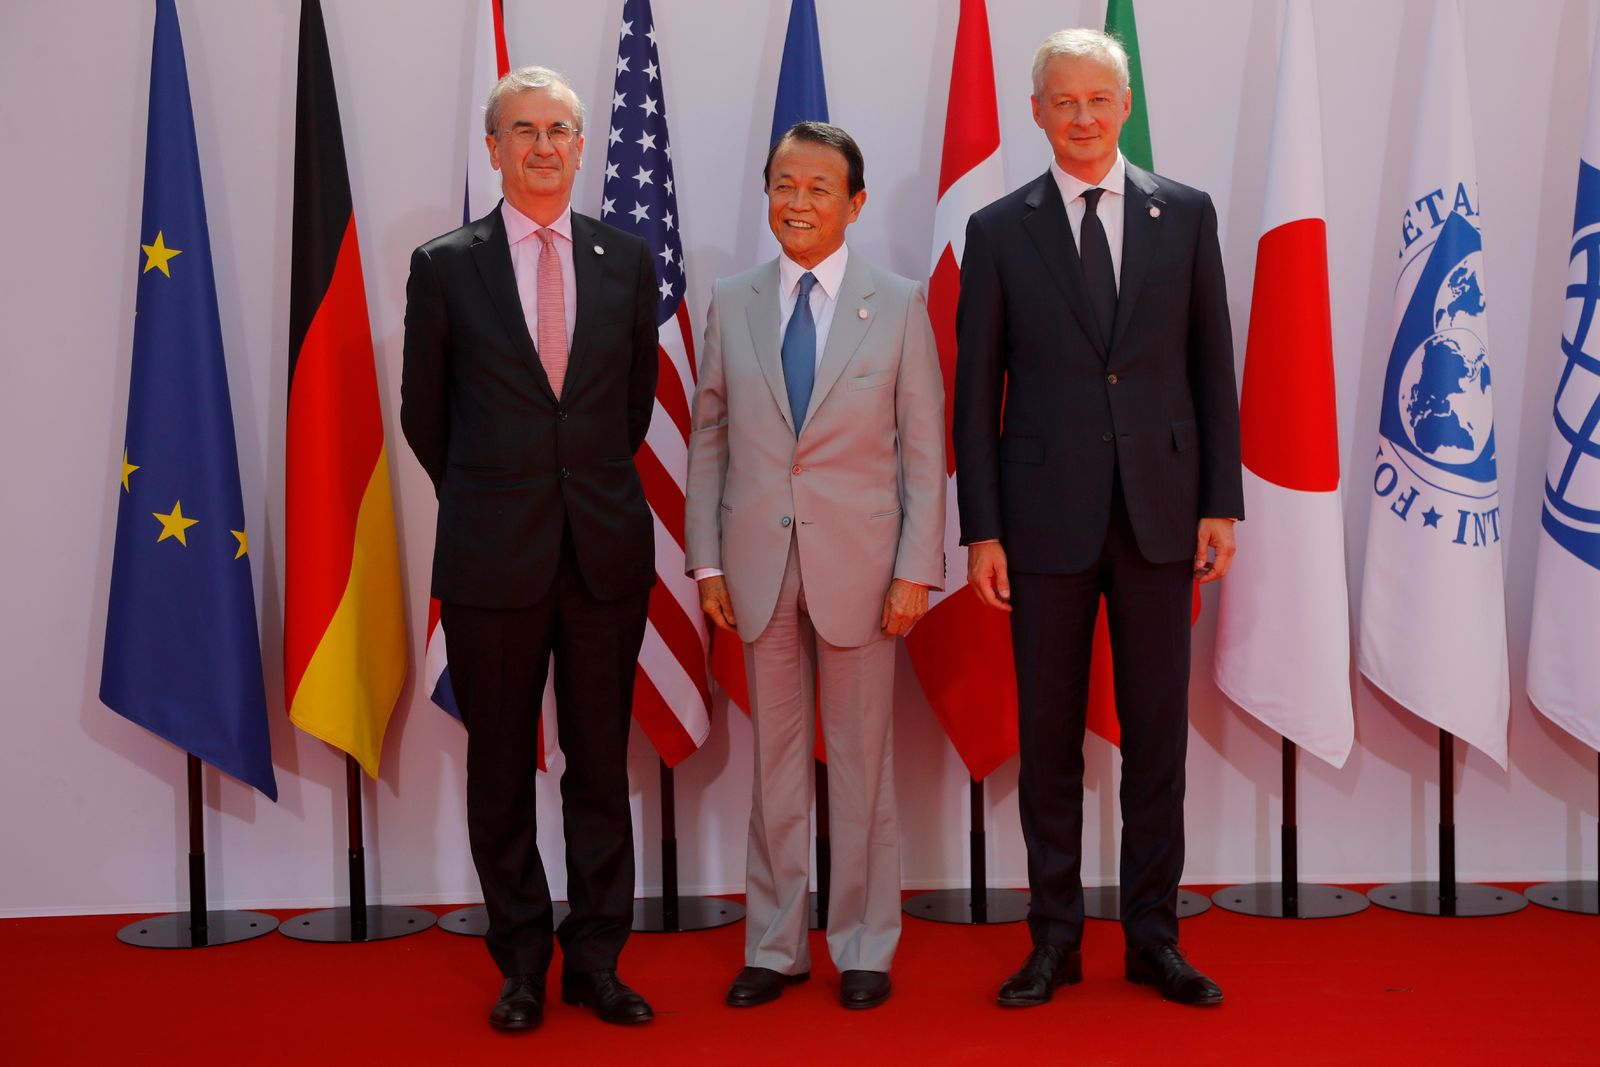 French Finance Minister Bruno Le Maire, right, welcomes Japan's Finance Minister Taro Aso , center, with Governor of the Bank of France Francois Villeroy de Galhau, at the G-7 Finance Wednesday July 17, 2019.{ } (AP Photo/Michel Euler)